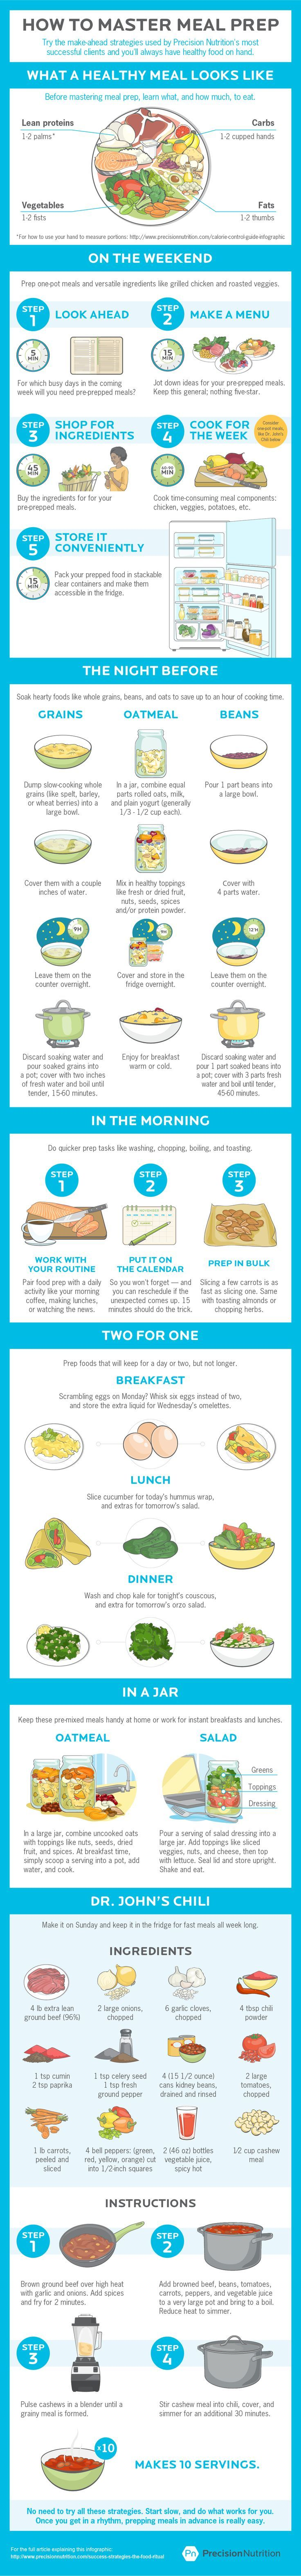 How to Master Meal Prep: [Infographic] 5 tricks for prepping healthy food in advance: